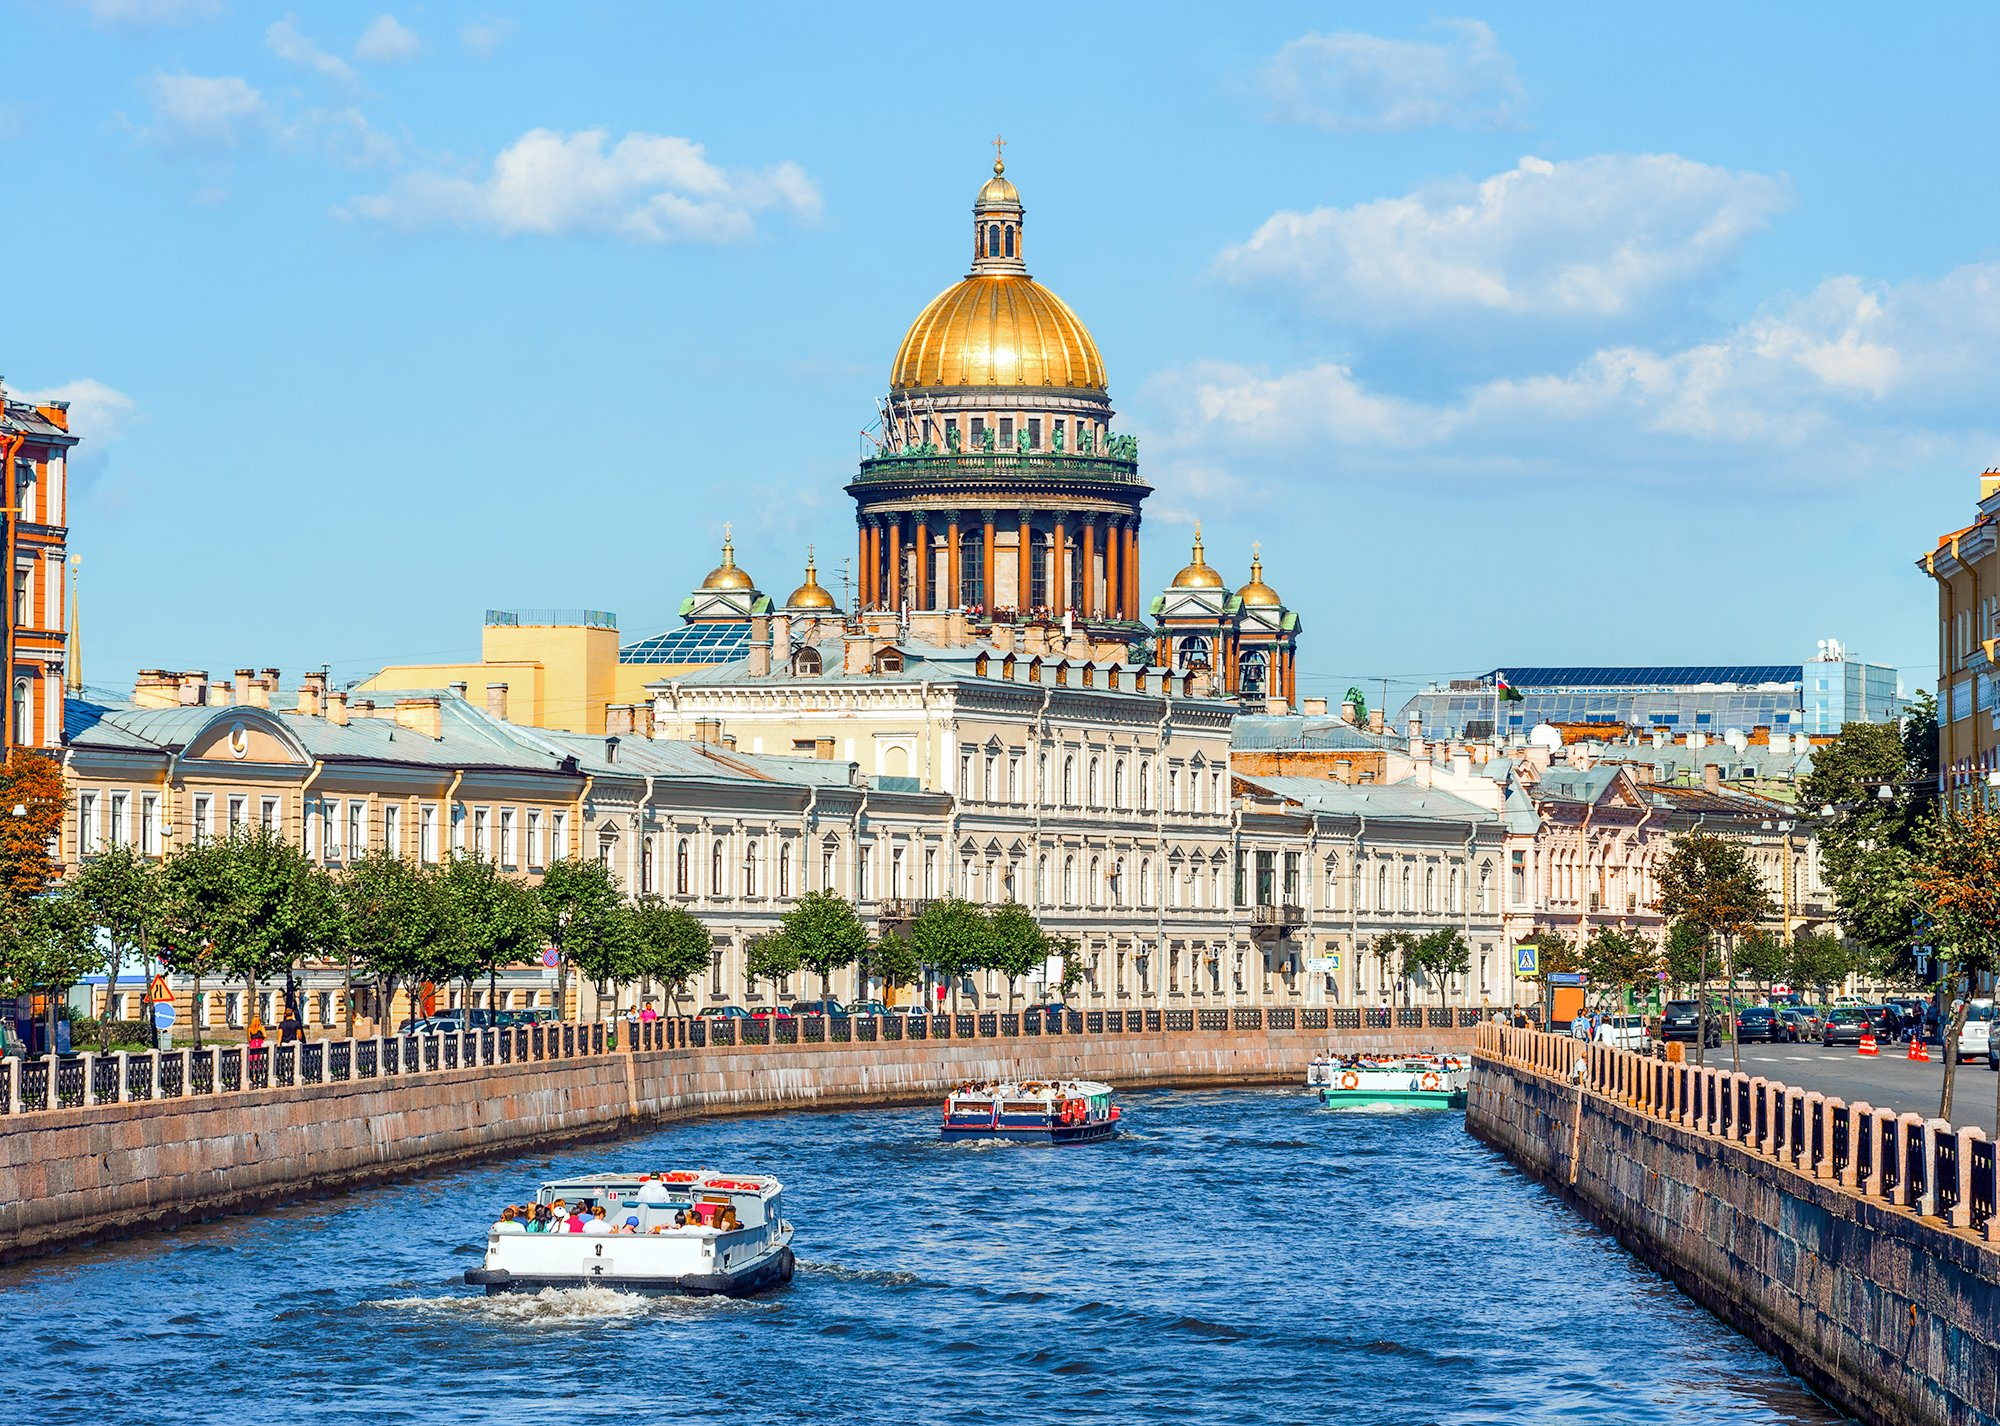 What to do in St Petersburg Russia: take a boat tour of the city's canals